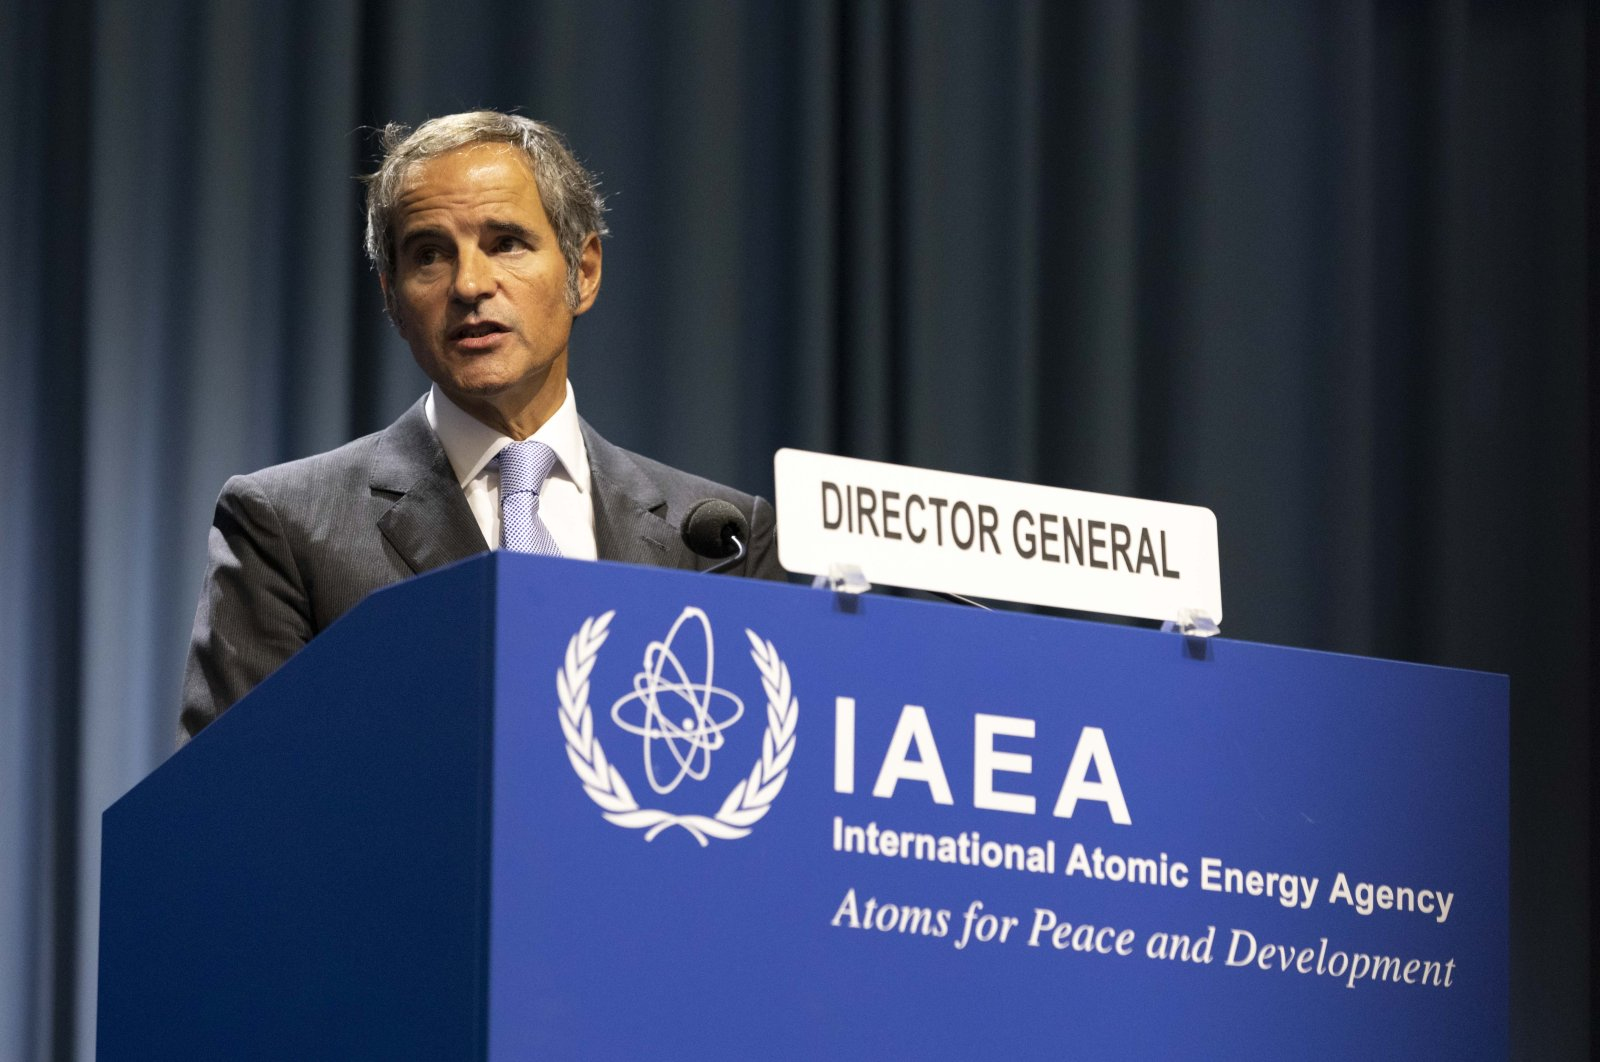 The director-general of the International Atomic Energy Agency (IAEA) Rafael Mariano Grossi from Argentina talks on stage at the International Atomic Energy's (IAEA) General Conference about nuclear verification in Iran in Vienna, Austria, Sept. 20, 2021. (AP Photo)